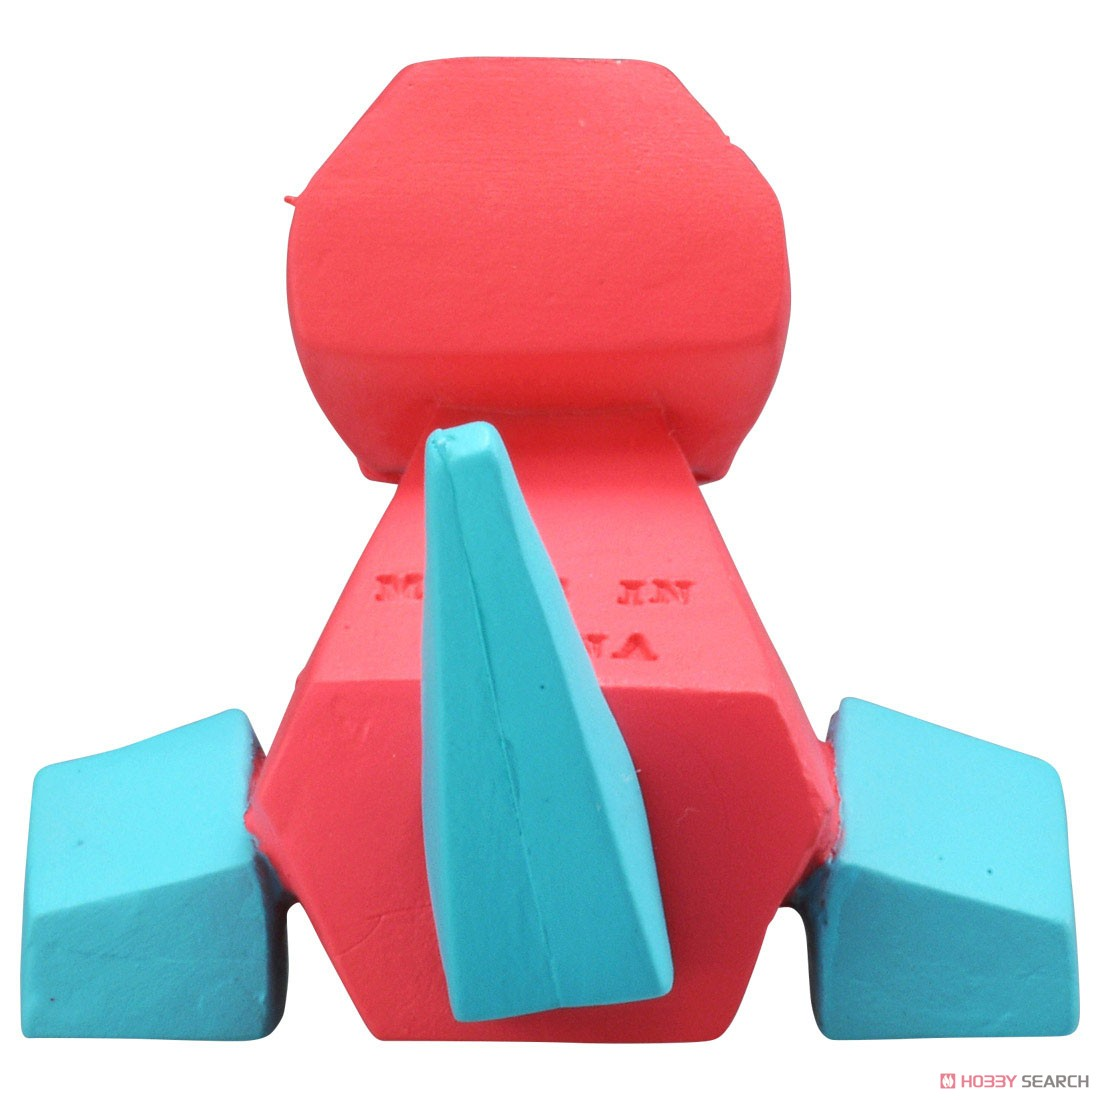 Monster CollectionEX EMC-08 Porygon (Character Toy) Item picture4